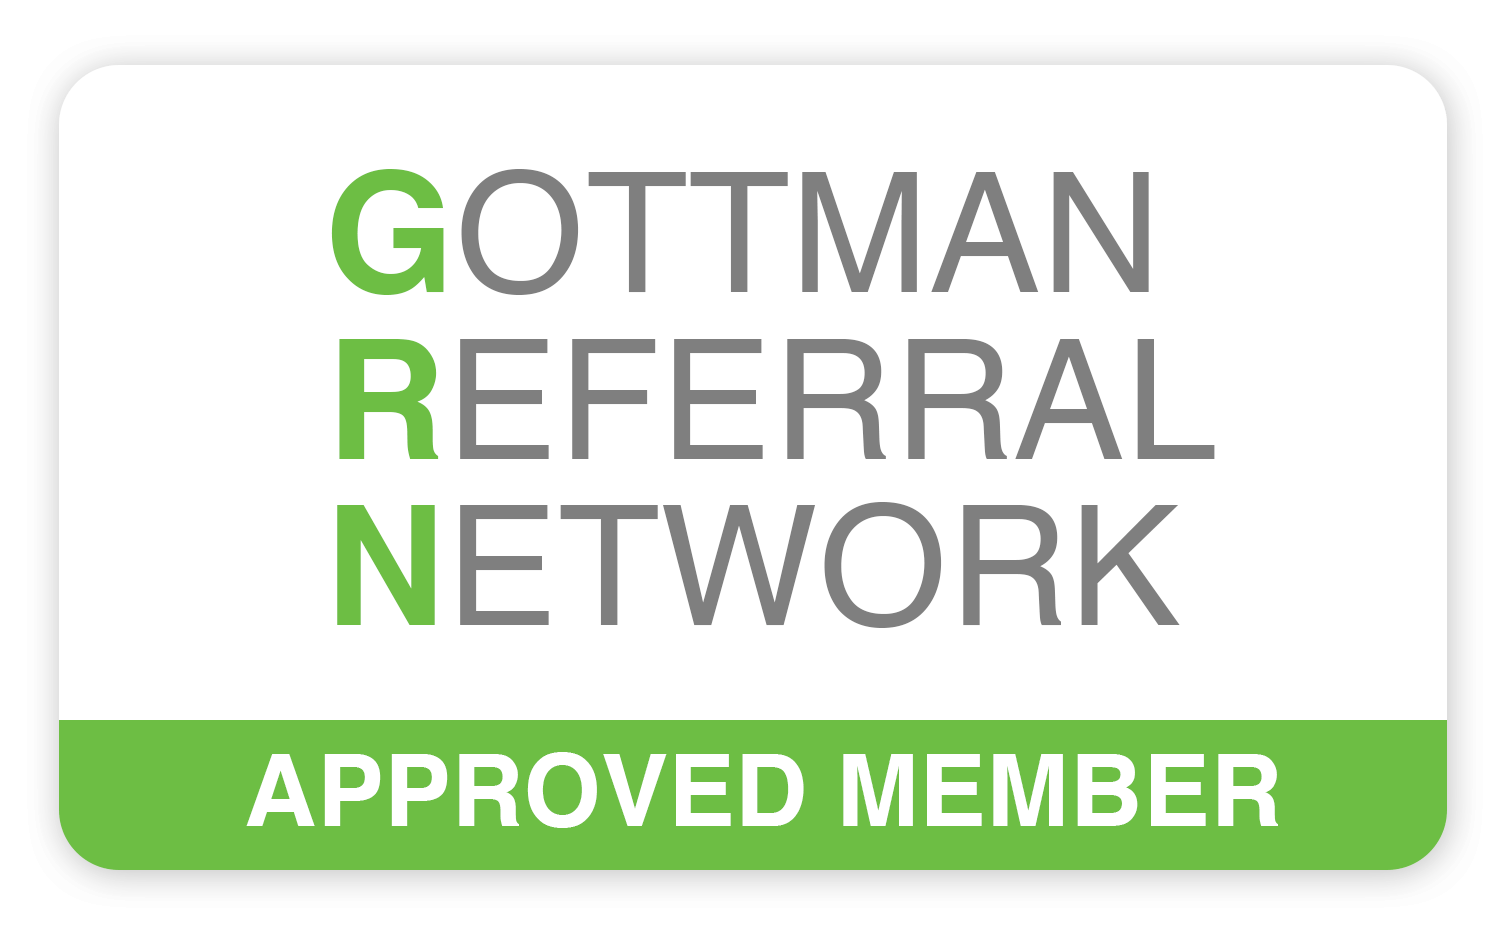 Jeannine Vegh's profile on the Gottman Referral Network